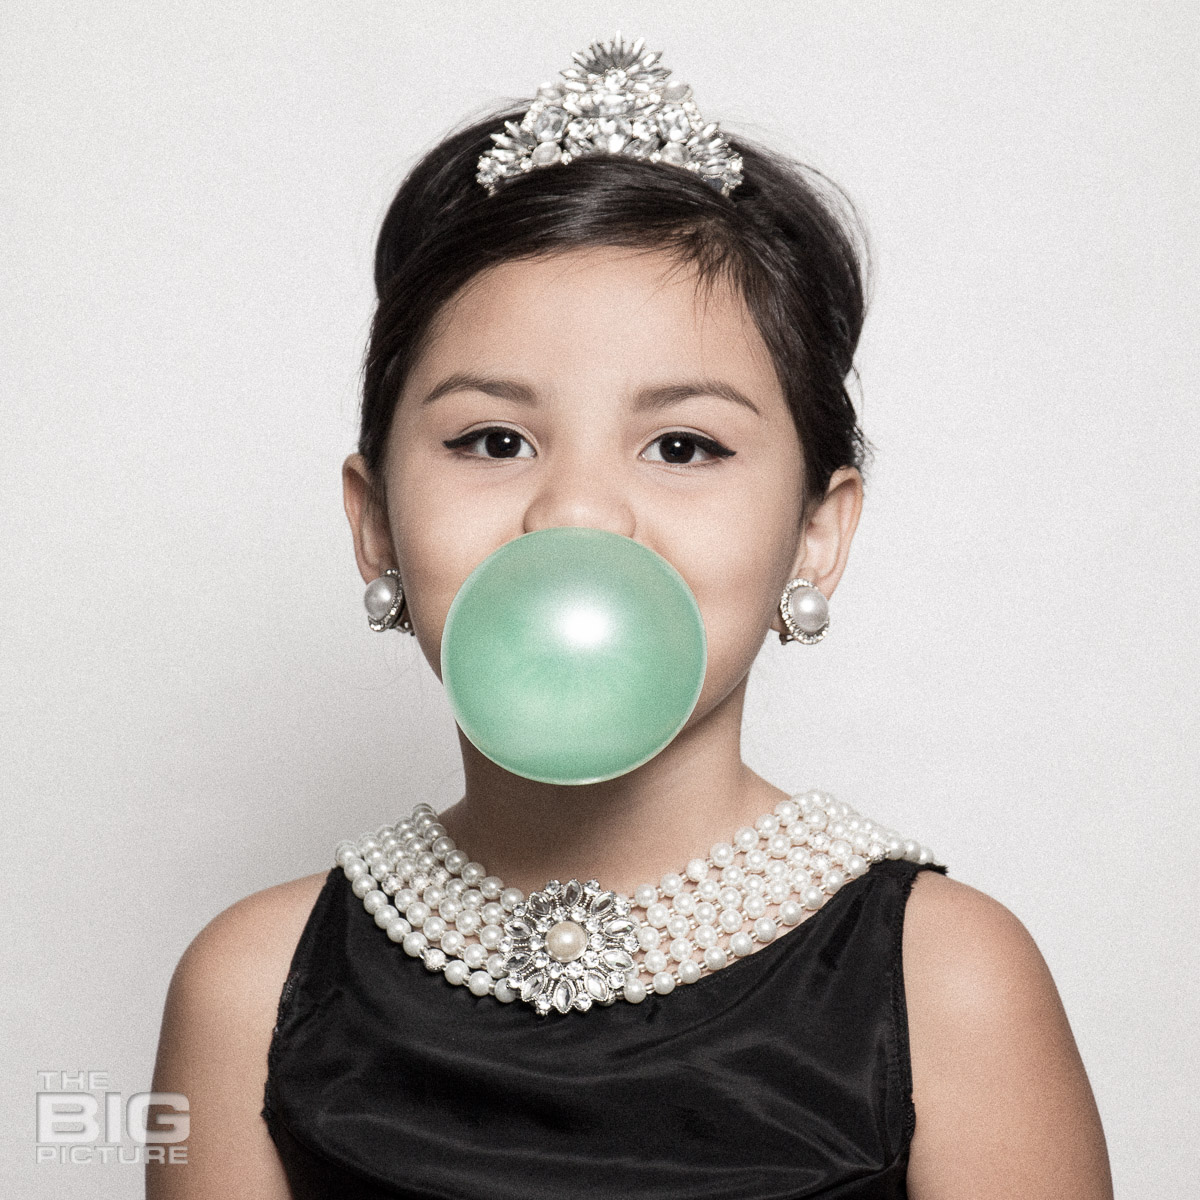 Ava blowing a bubble like Audrey Hepburn in a scene from breakfast at Tiffany's  - kids photography - children's photography